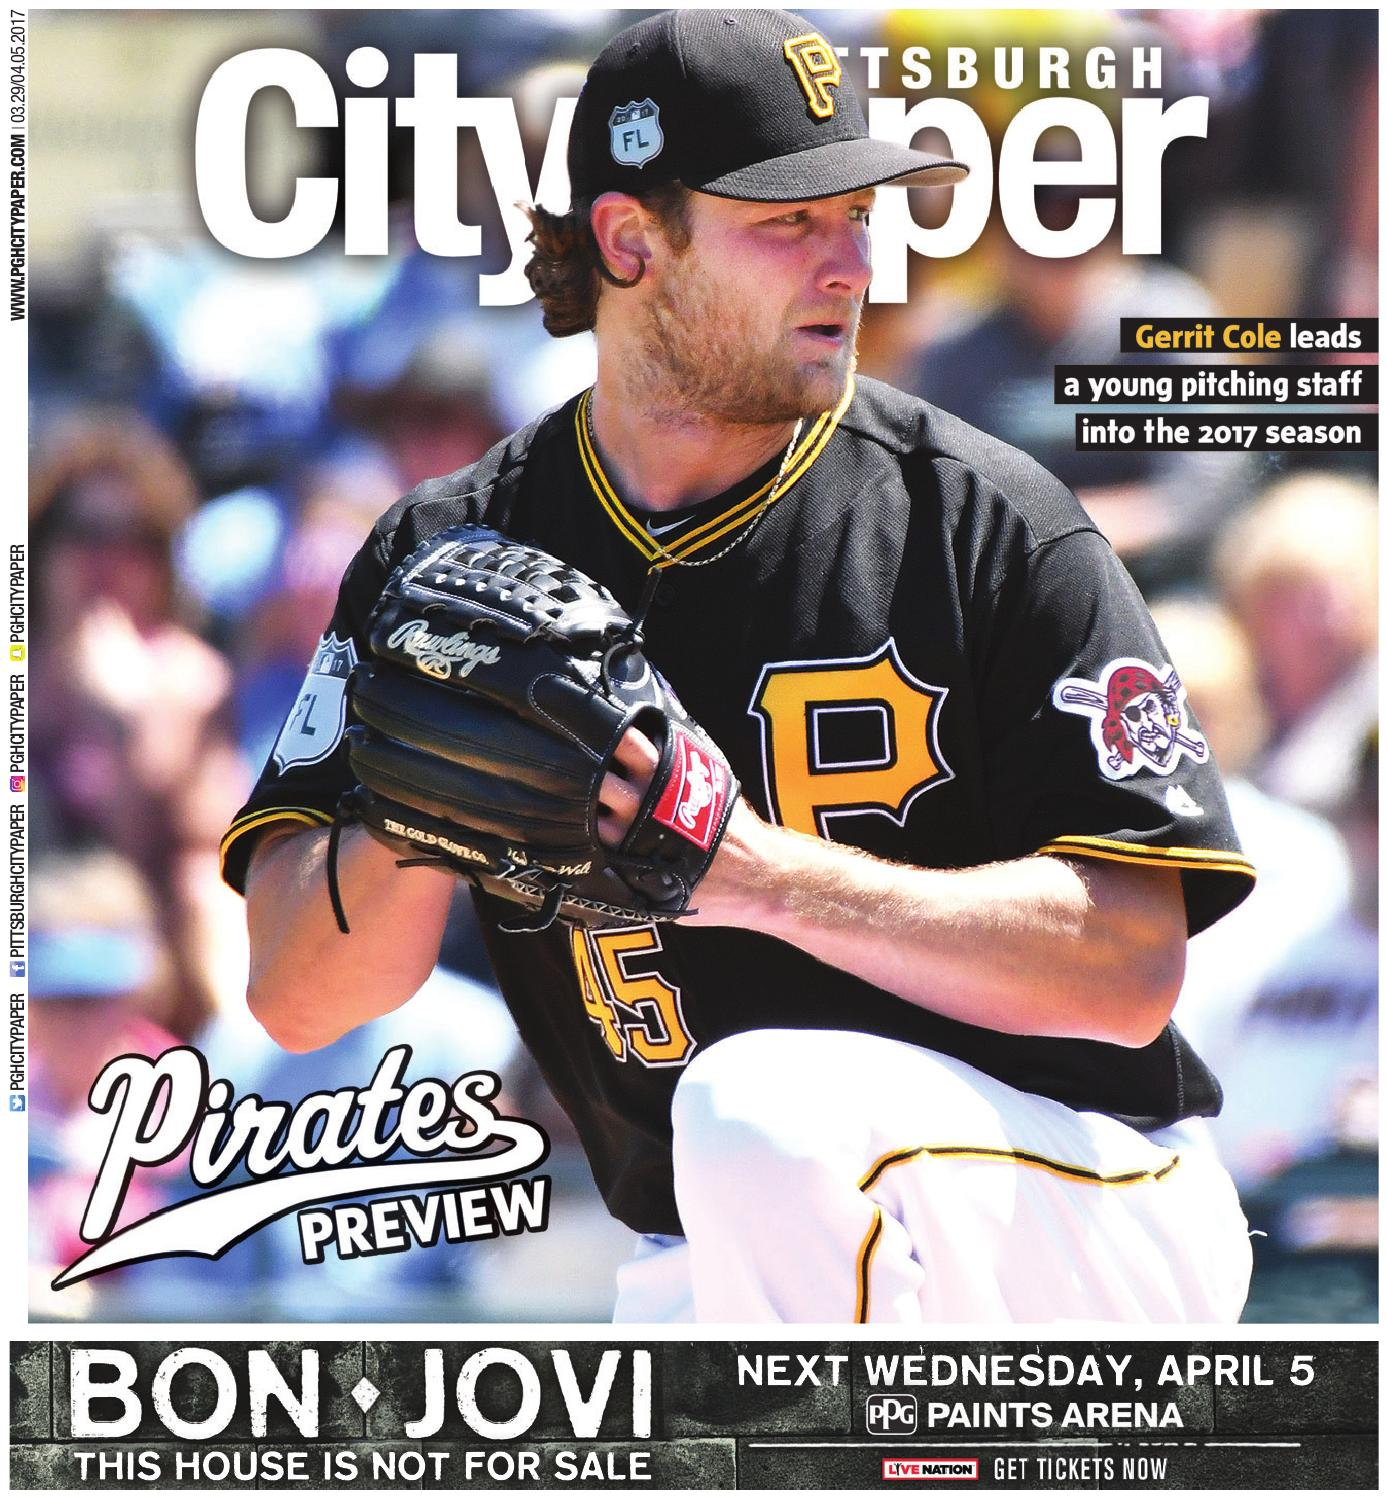 march 29 2017 pittsburgh city paper by pittsburgh city paper issuu